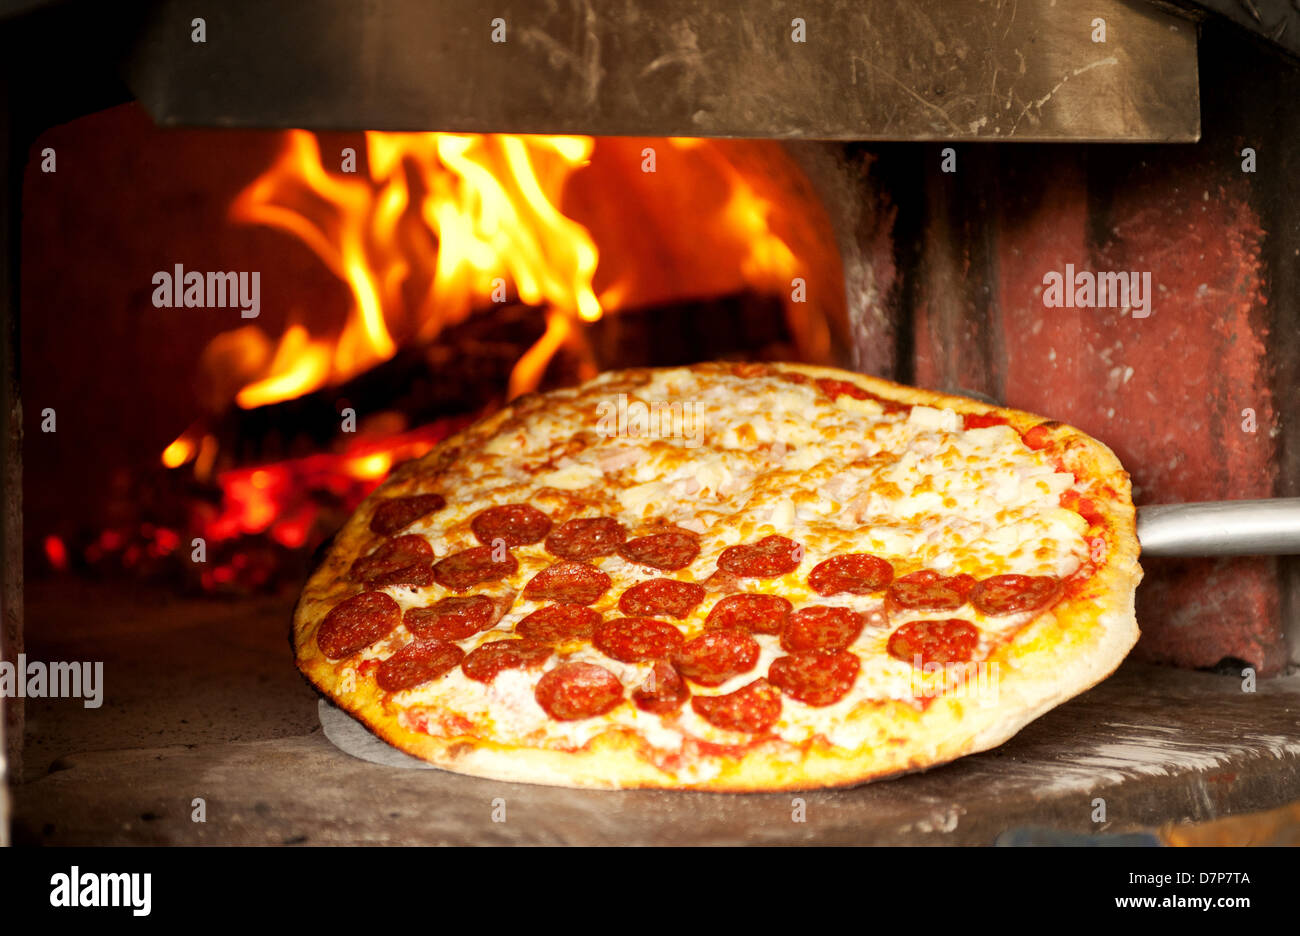 A pepperoni pizza cooks in a wood fired pizza oven. - Stock Image